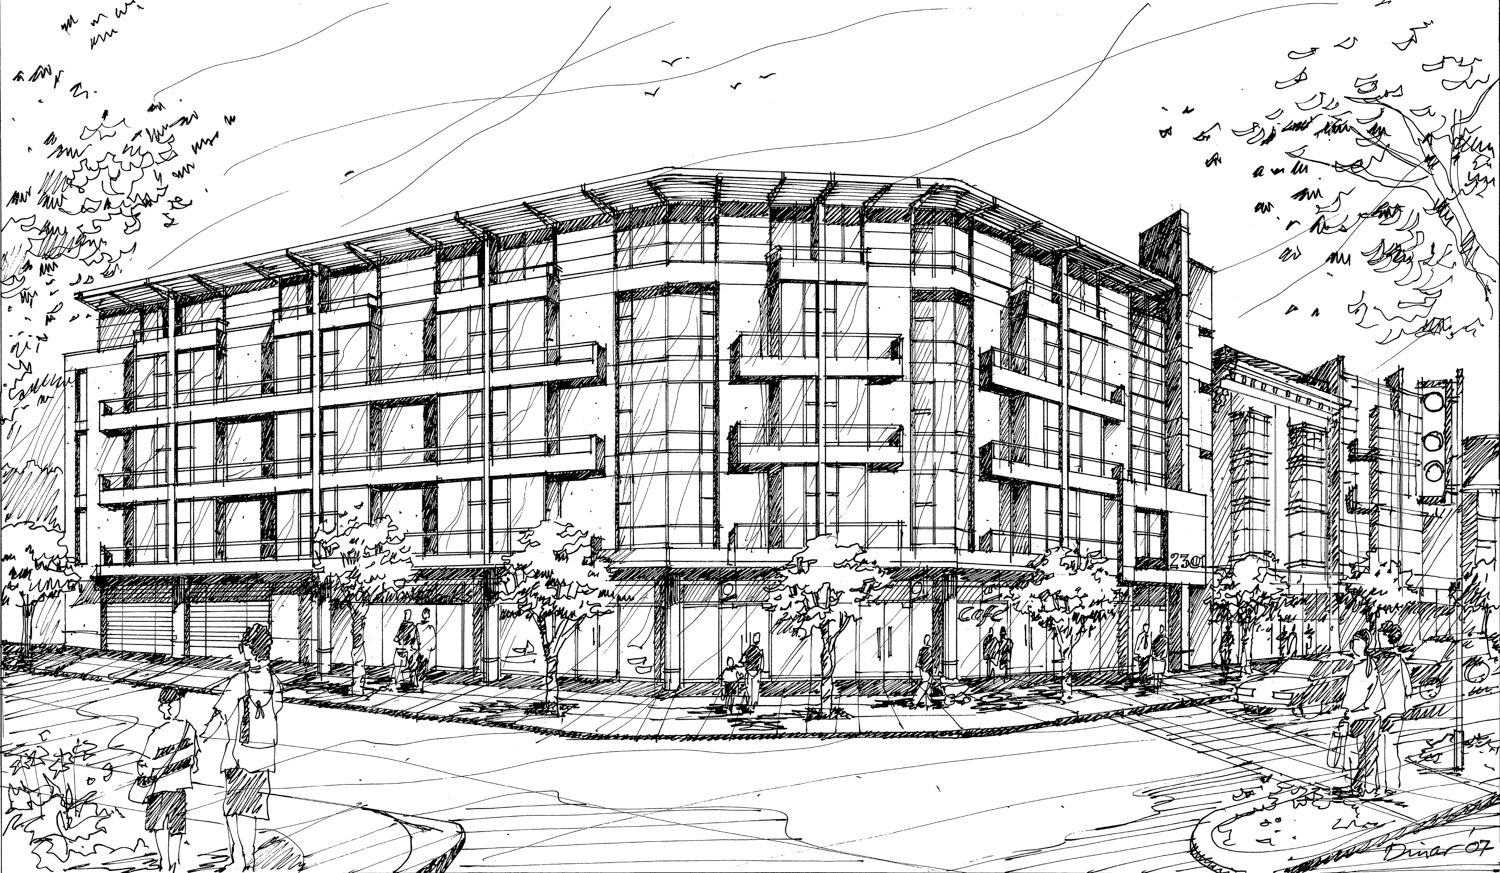 2311 San Pablo Avenue, 2007-era illustration reshared in 2020 with design by Dinar & Associates